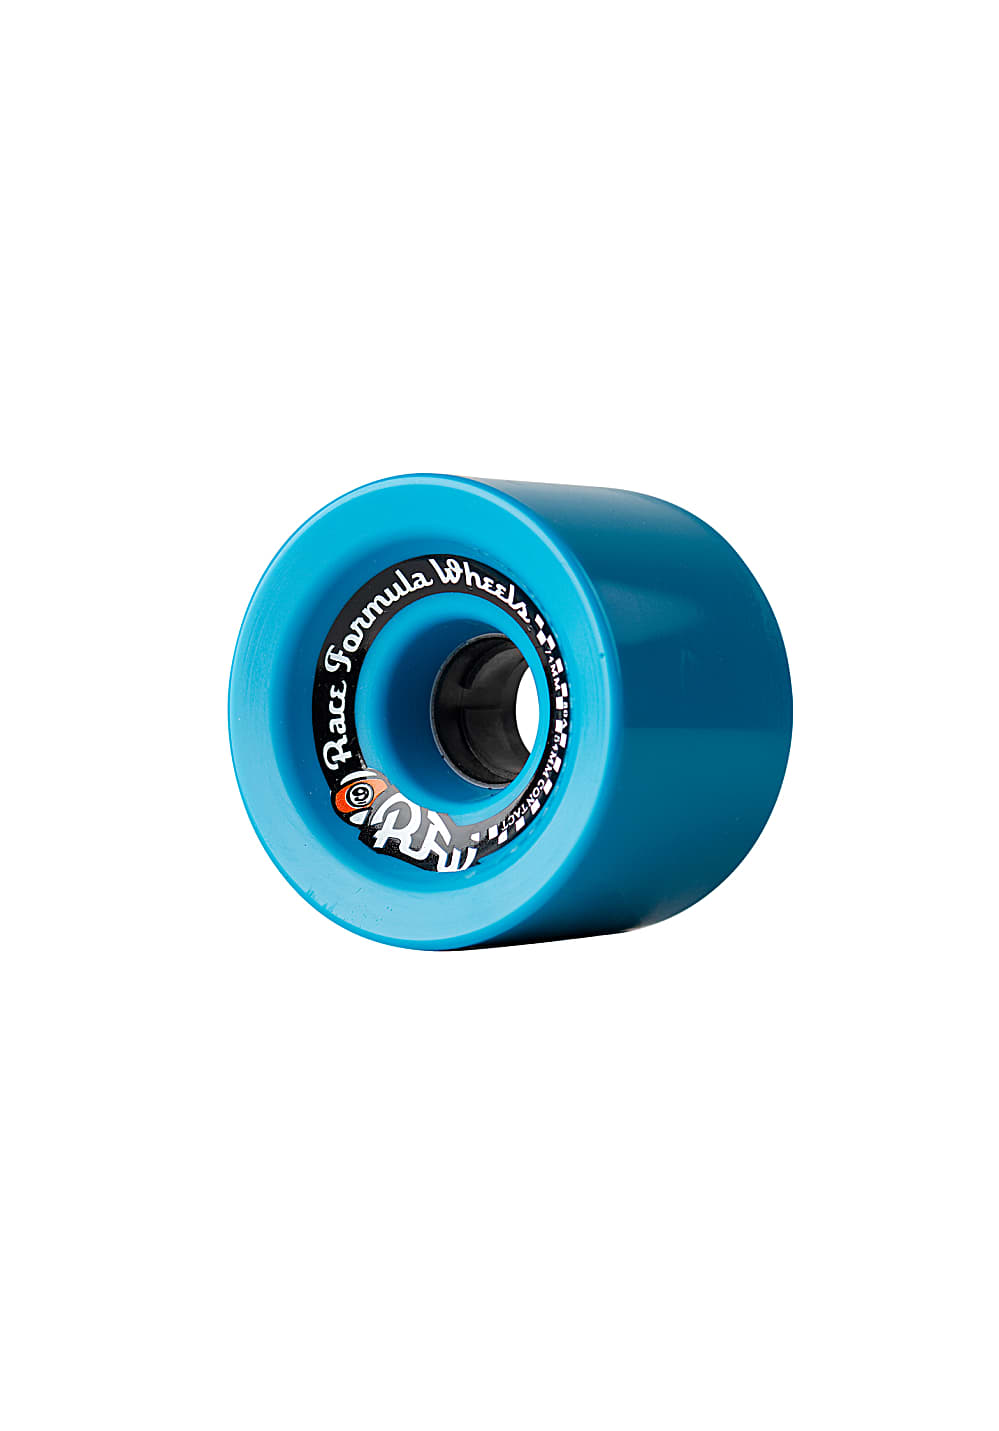 Sector 9 Wheels Race Formula 74mm 80A Skate Rollen - Blau - OneSize